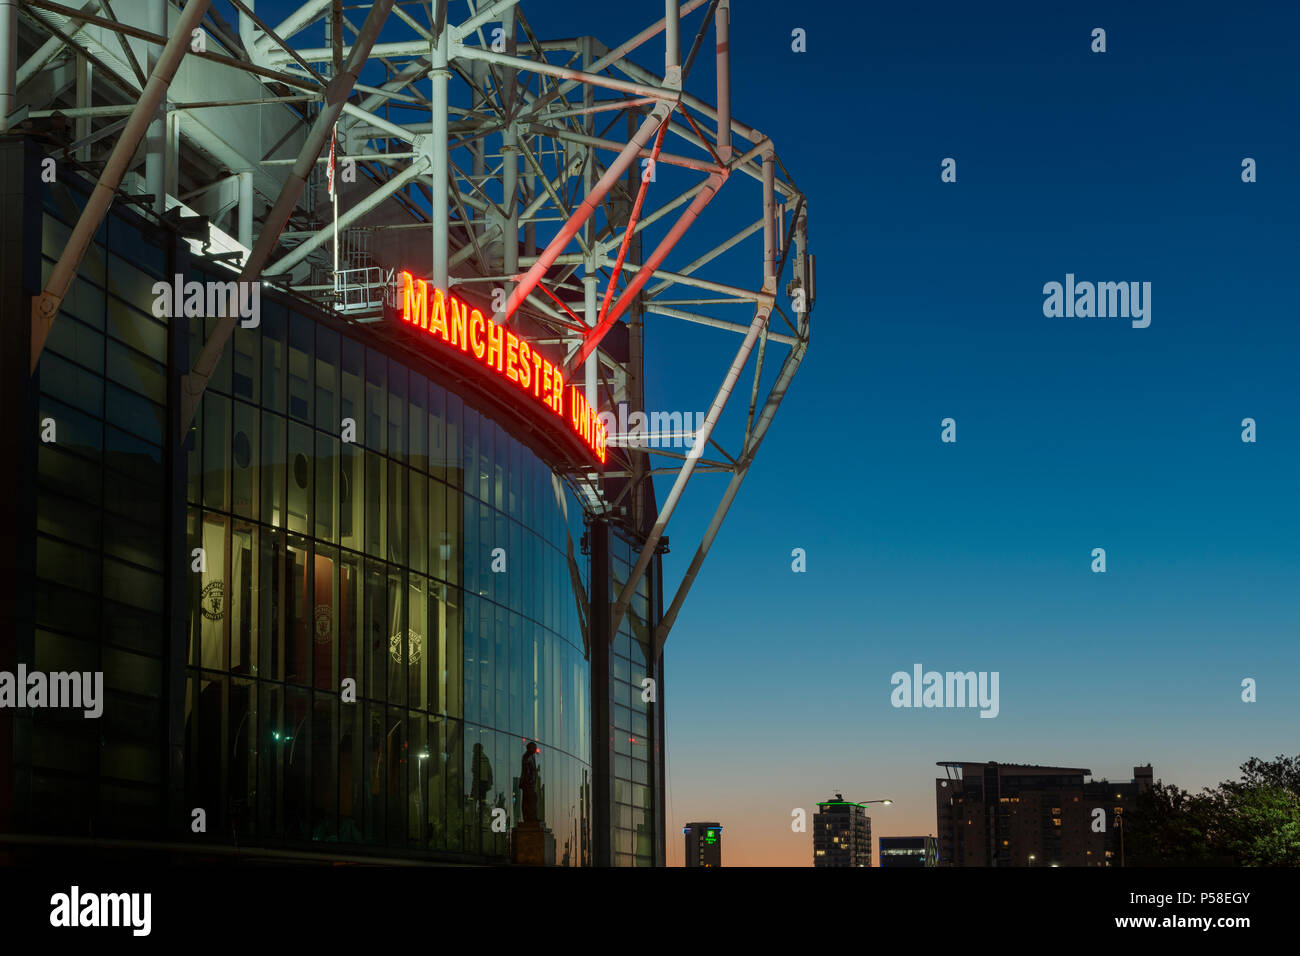 Old Trafford stadium, home of Manchester United Football Club, during a summer's evening (Editorial use only). - Stock Image